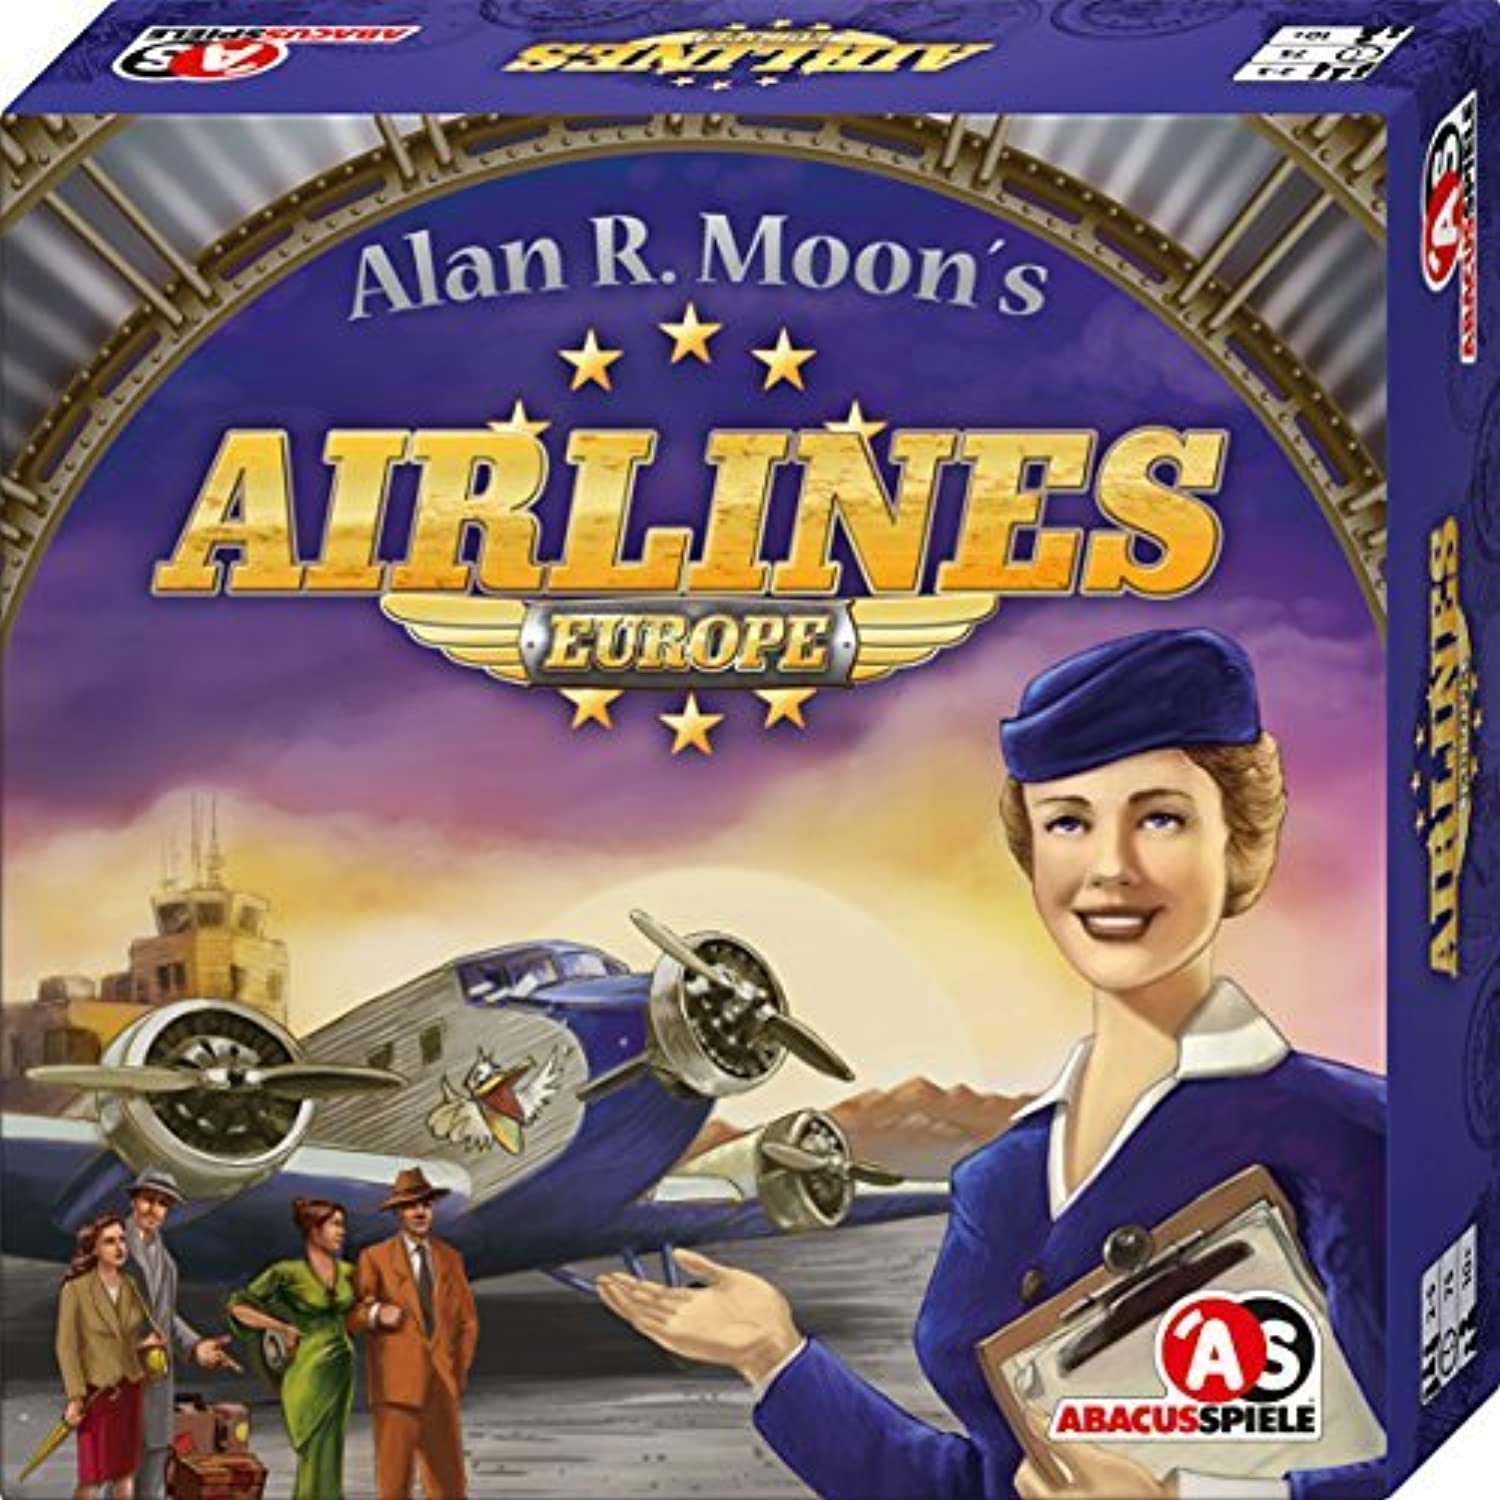 ¡envío gratis! Abacus Abacus Abacus Spiele ABA03111 Airlines Europe Juego by Abacus Spiele  ahorra 50% -75% de descuento